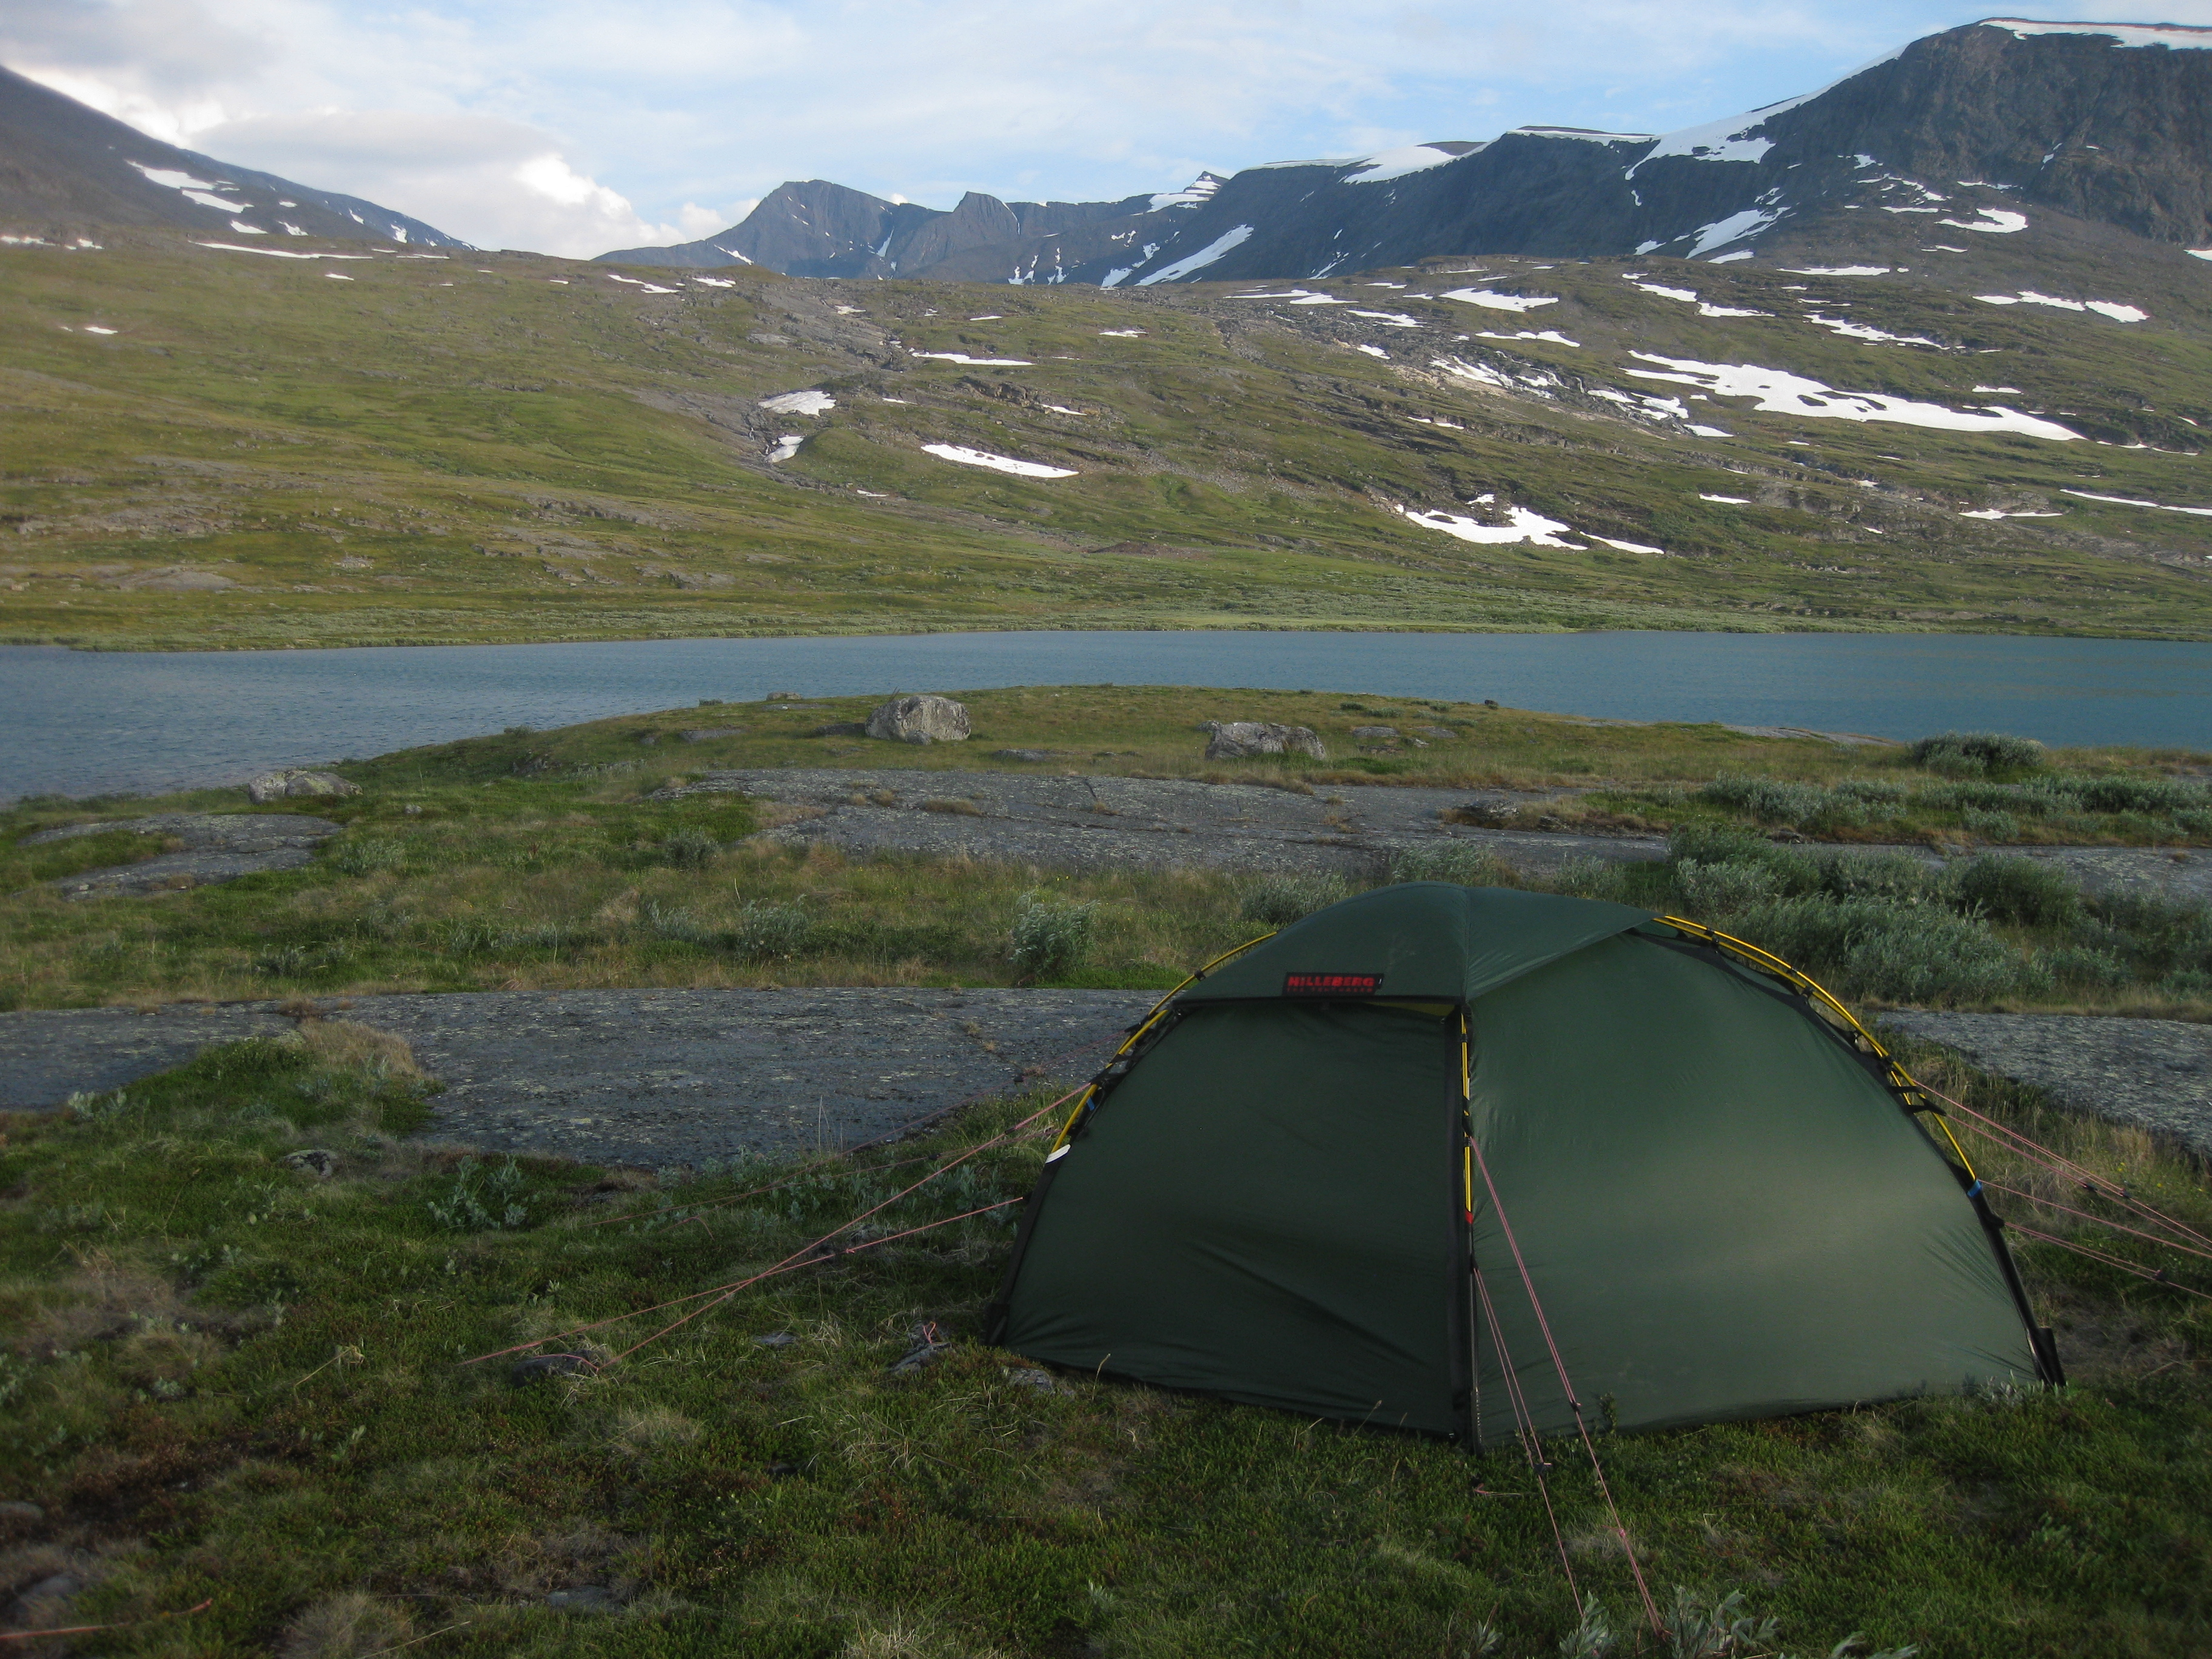 The Hilleberg Soulo is a perfect tent for solo hiking in every season. The weight is quite low and the quality extremely high. & Review: Hilleberg Soulo u2013 Vildmarks Conrad